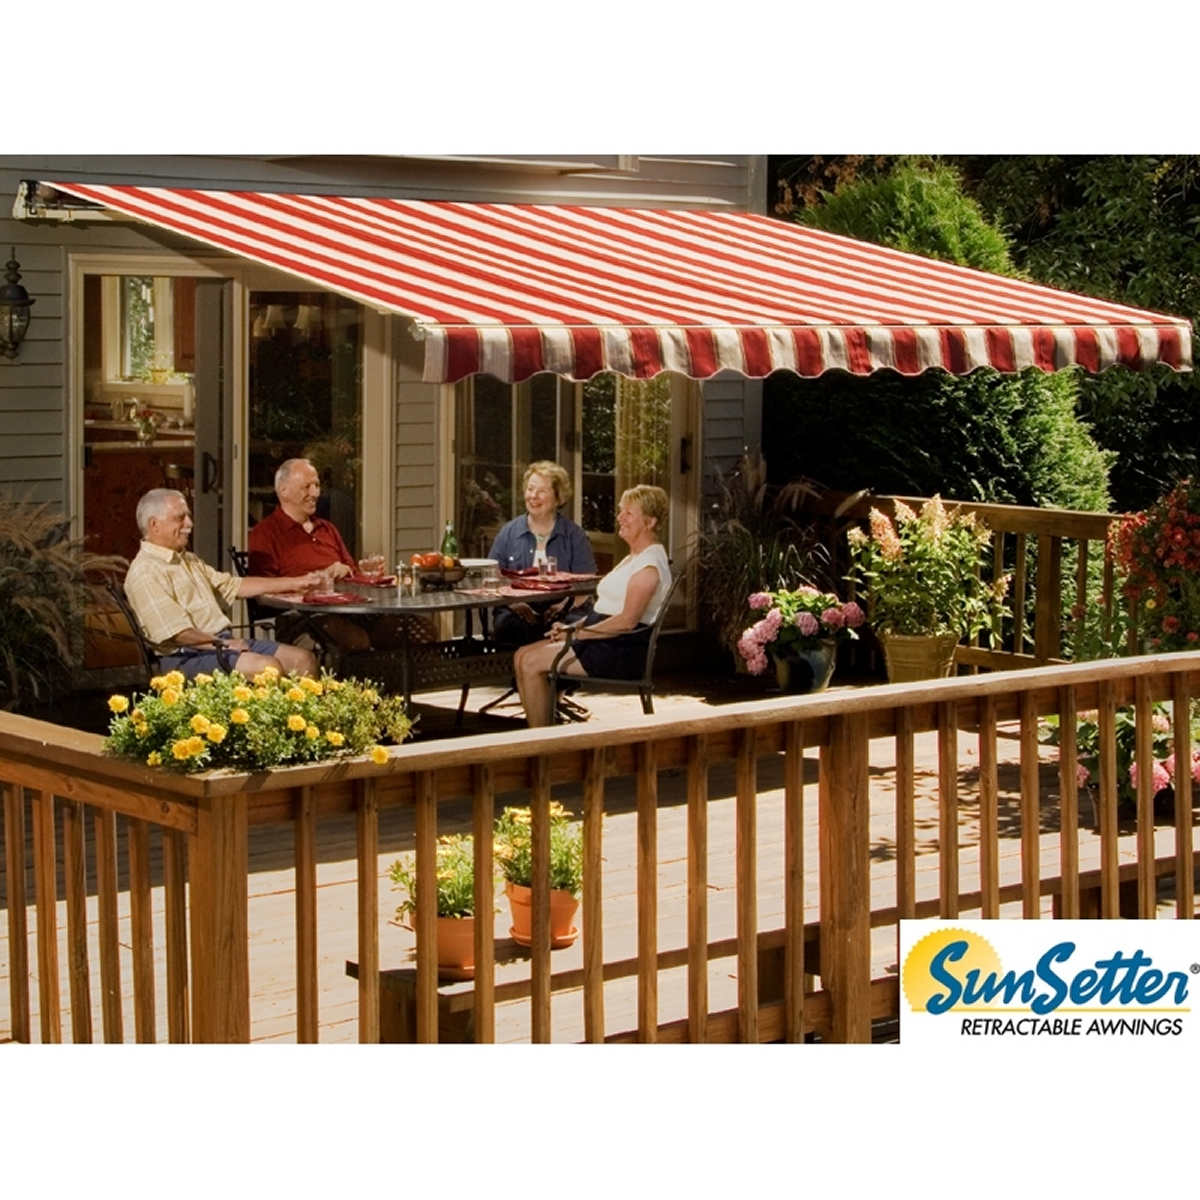 17 Motorized Retractable Awning With Woven Acrylic Fabric